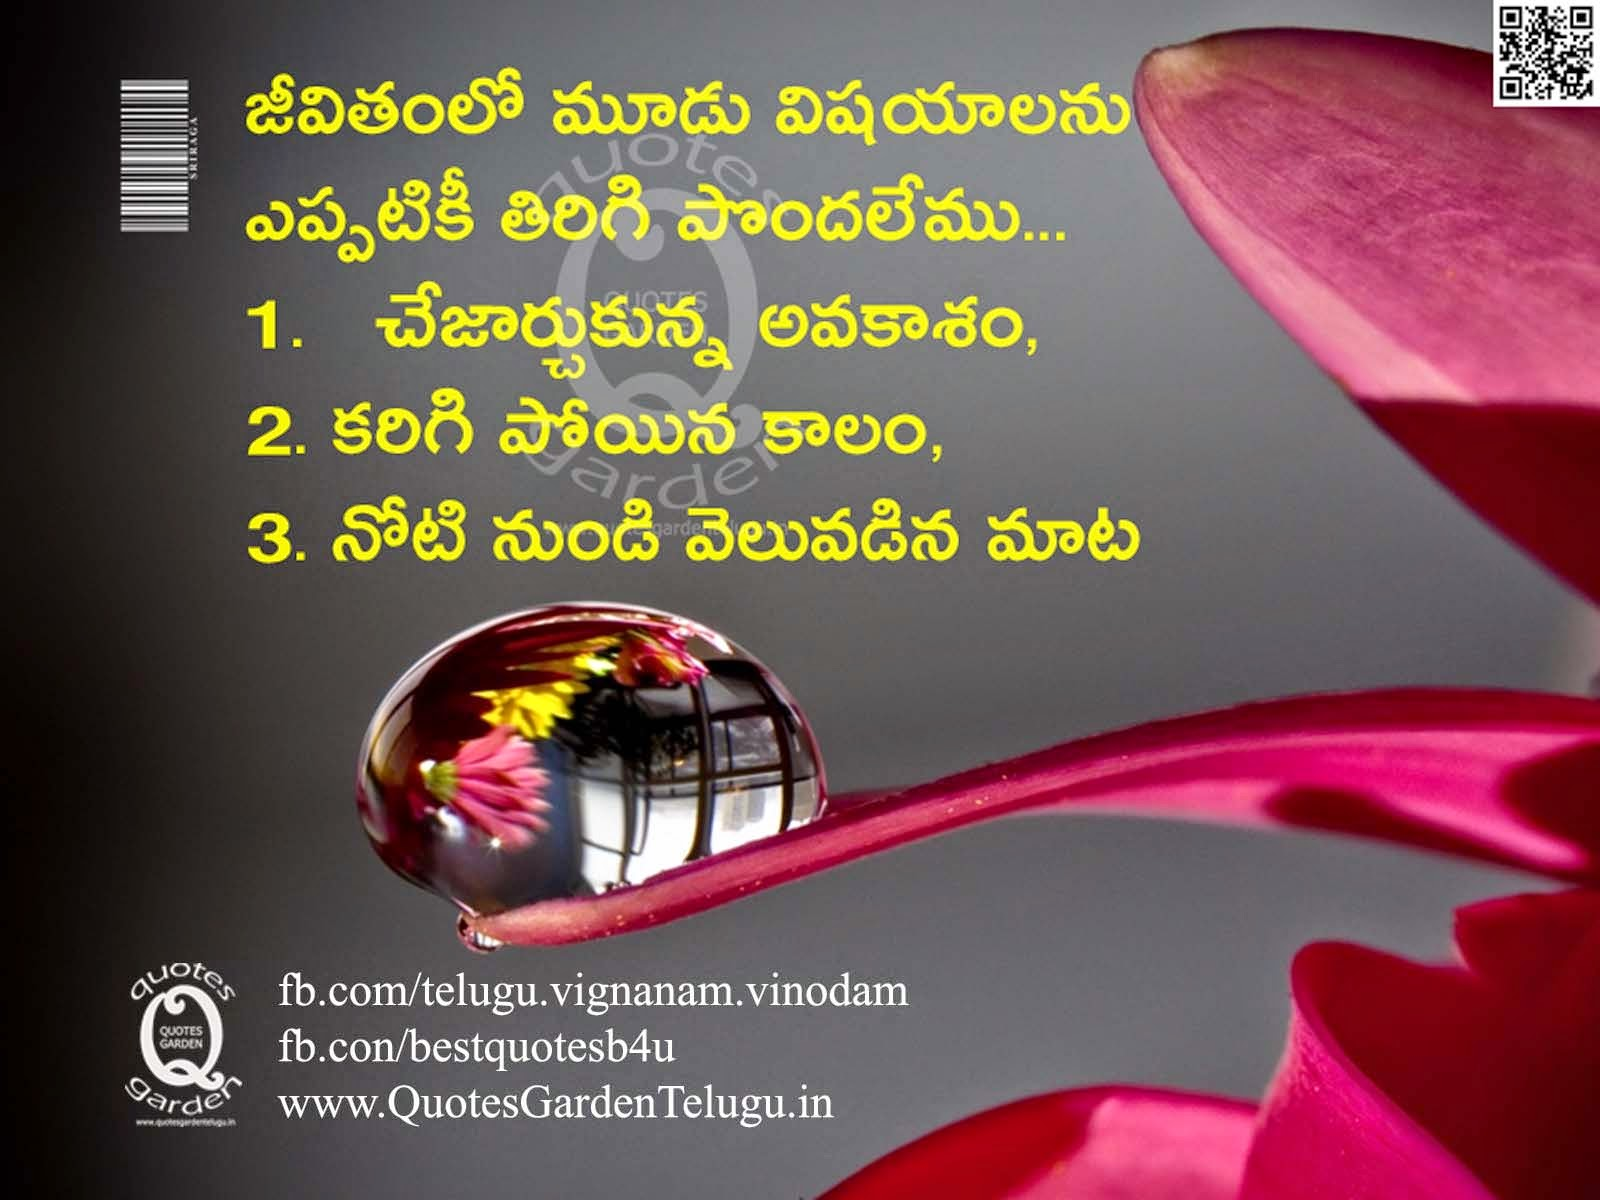 telugu best inspirational life quotes with best images and